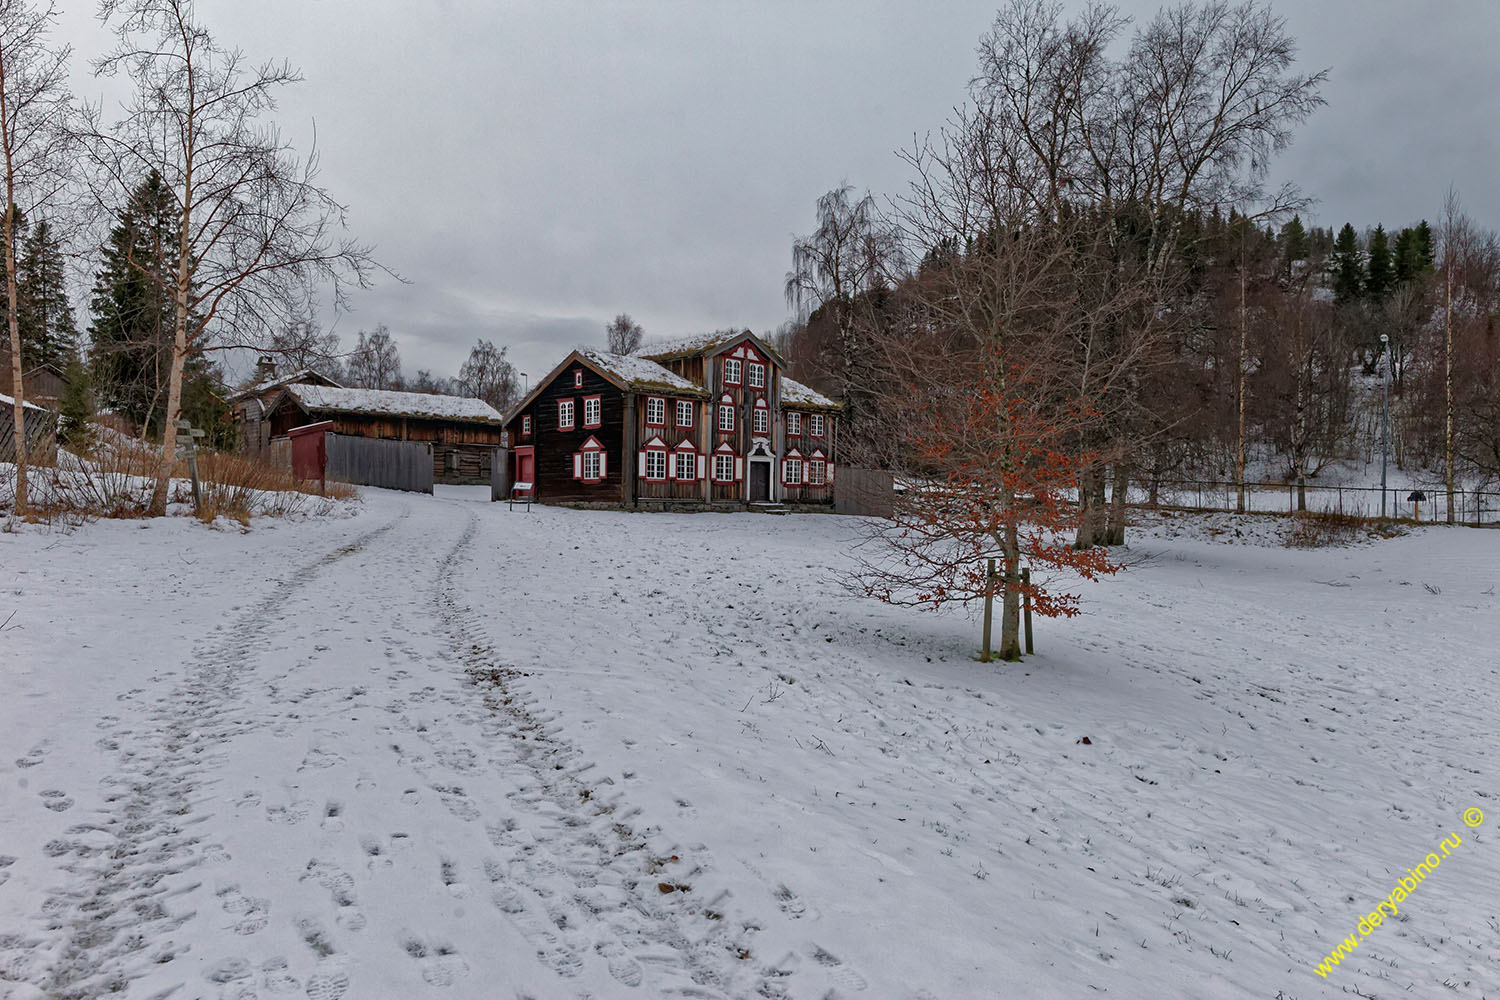 Sverresborg Norway Сверресборг Норвегия